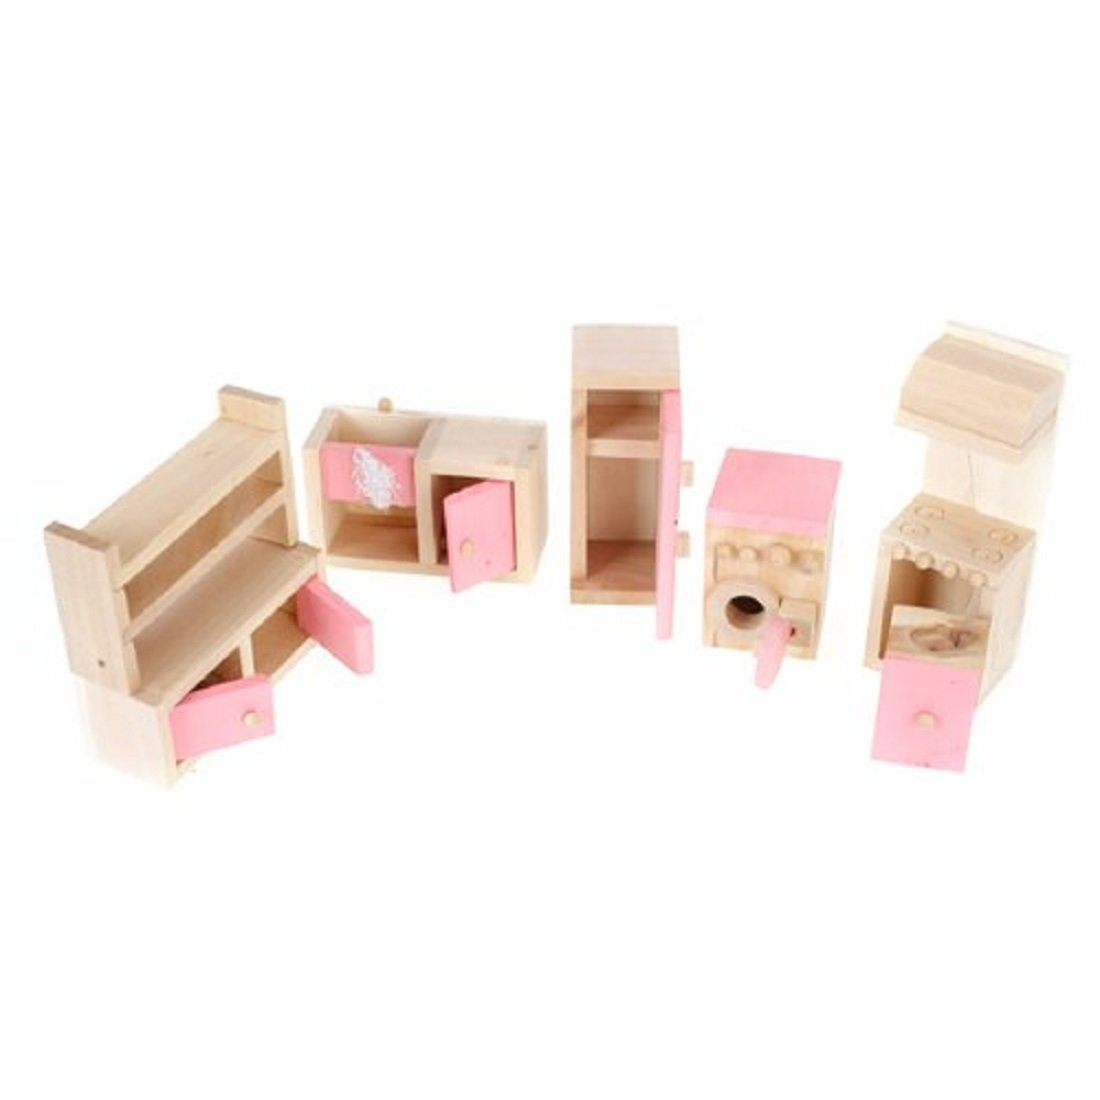 Pink children wooden doll house kitchen furniture kids room s Dolls wooden furniture